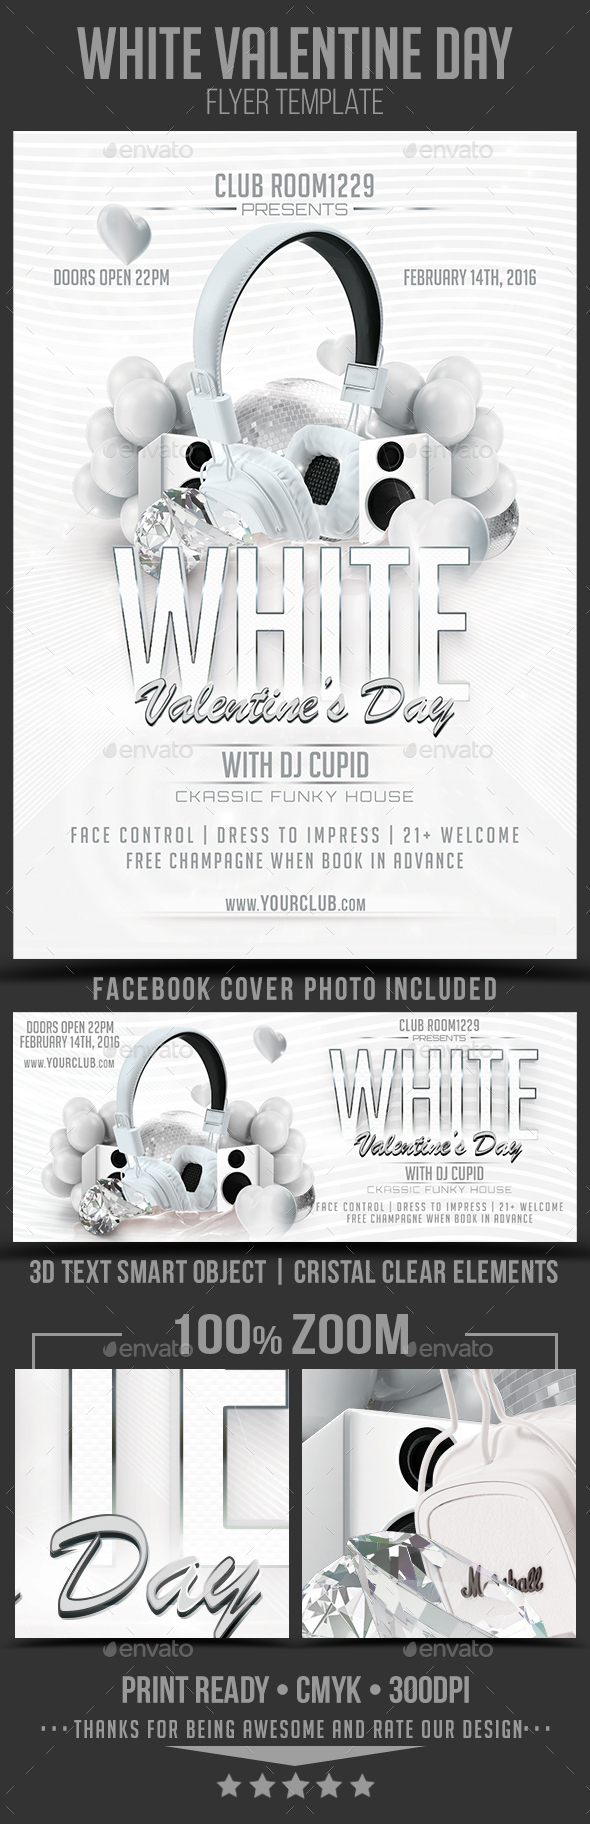 White Valentine Day Flyer Template - Clubs & Parties Events